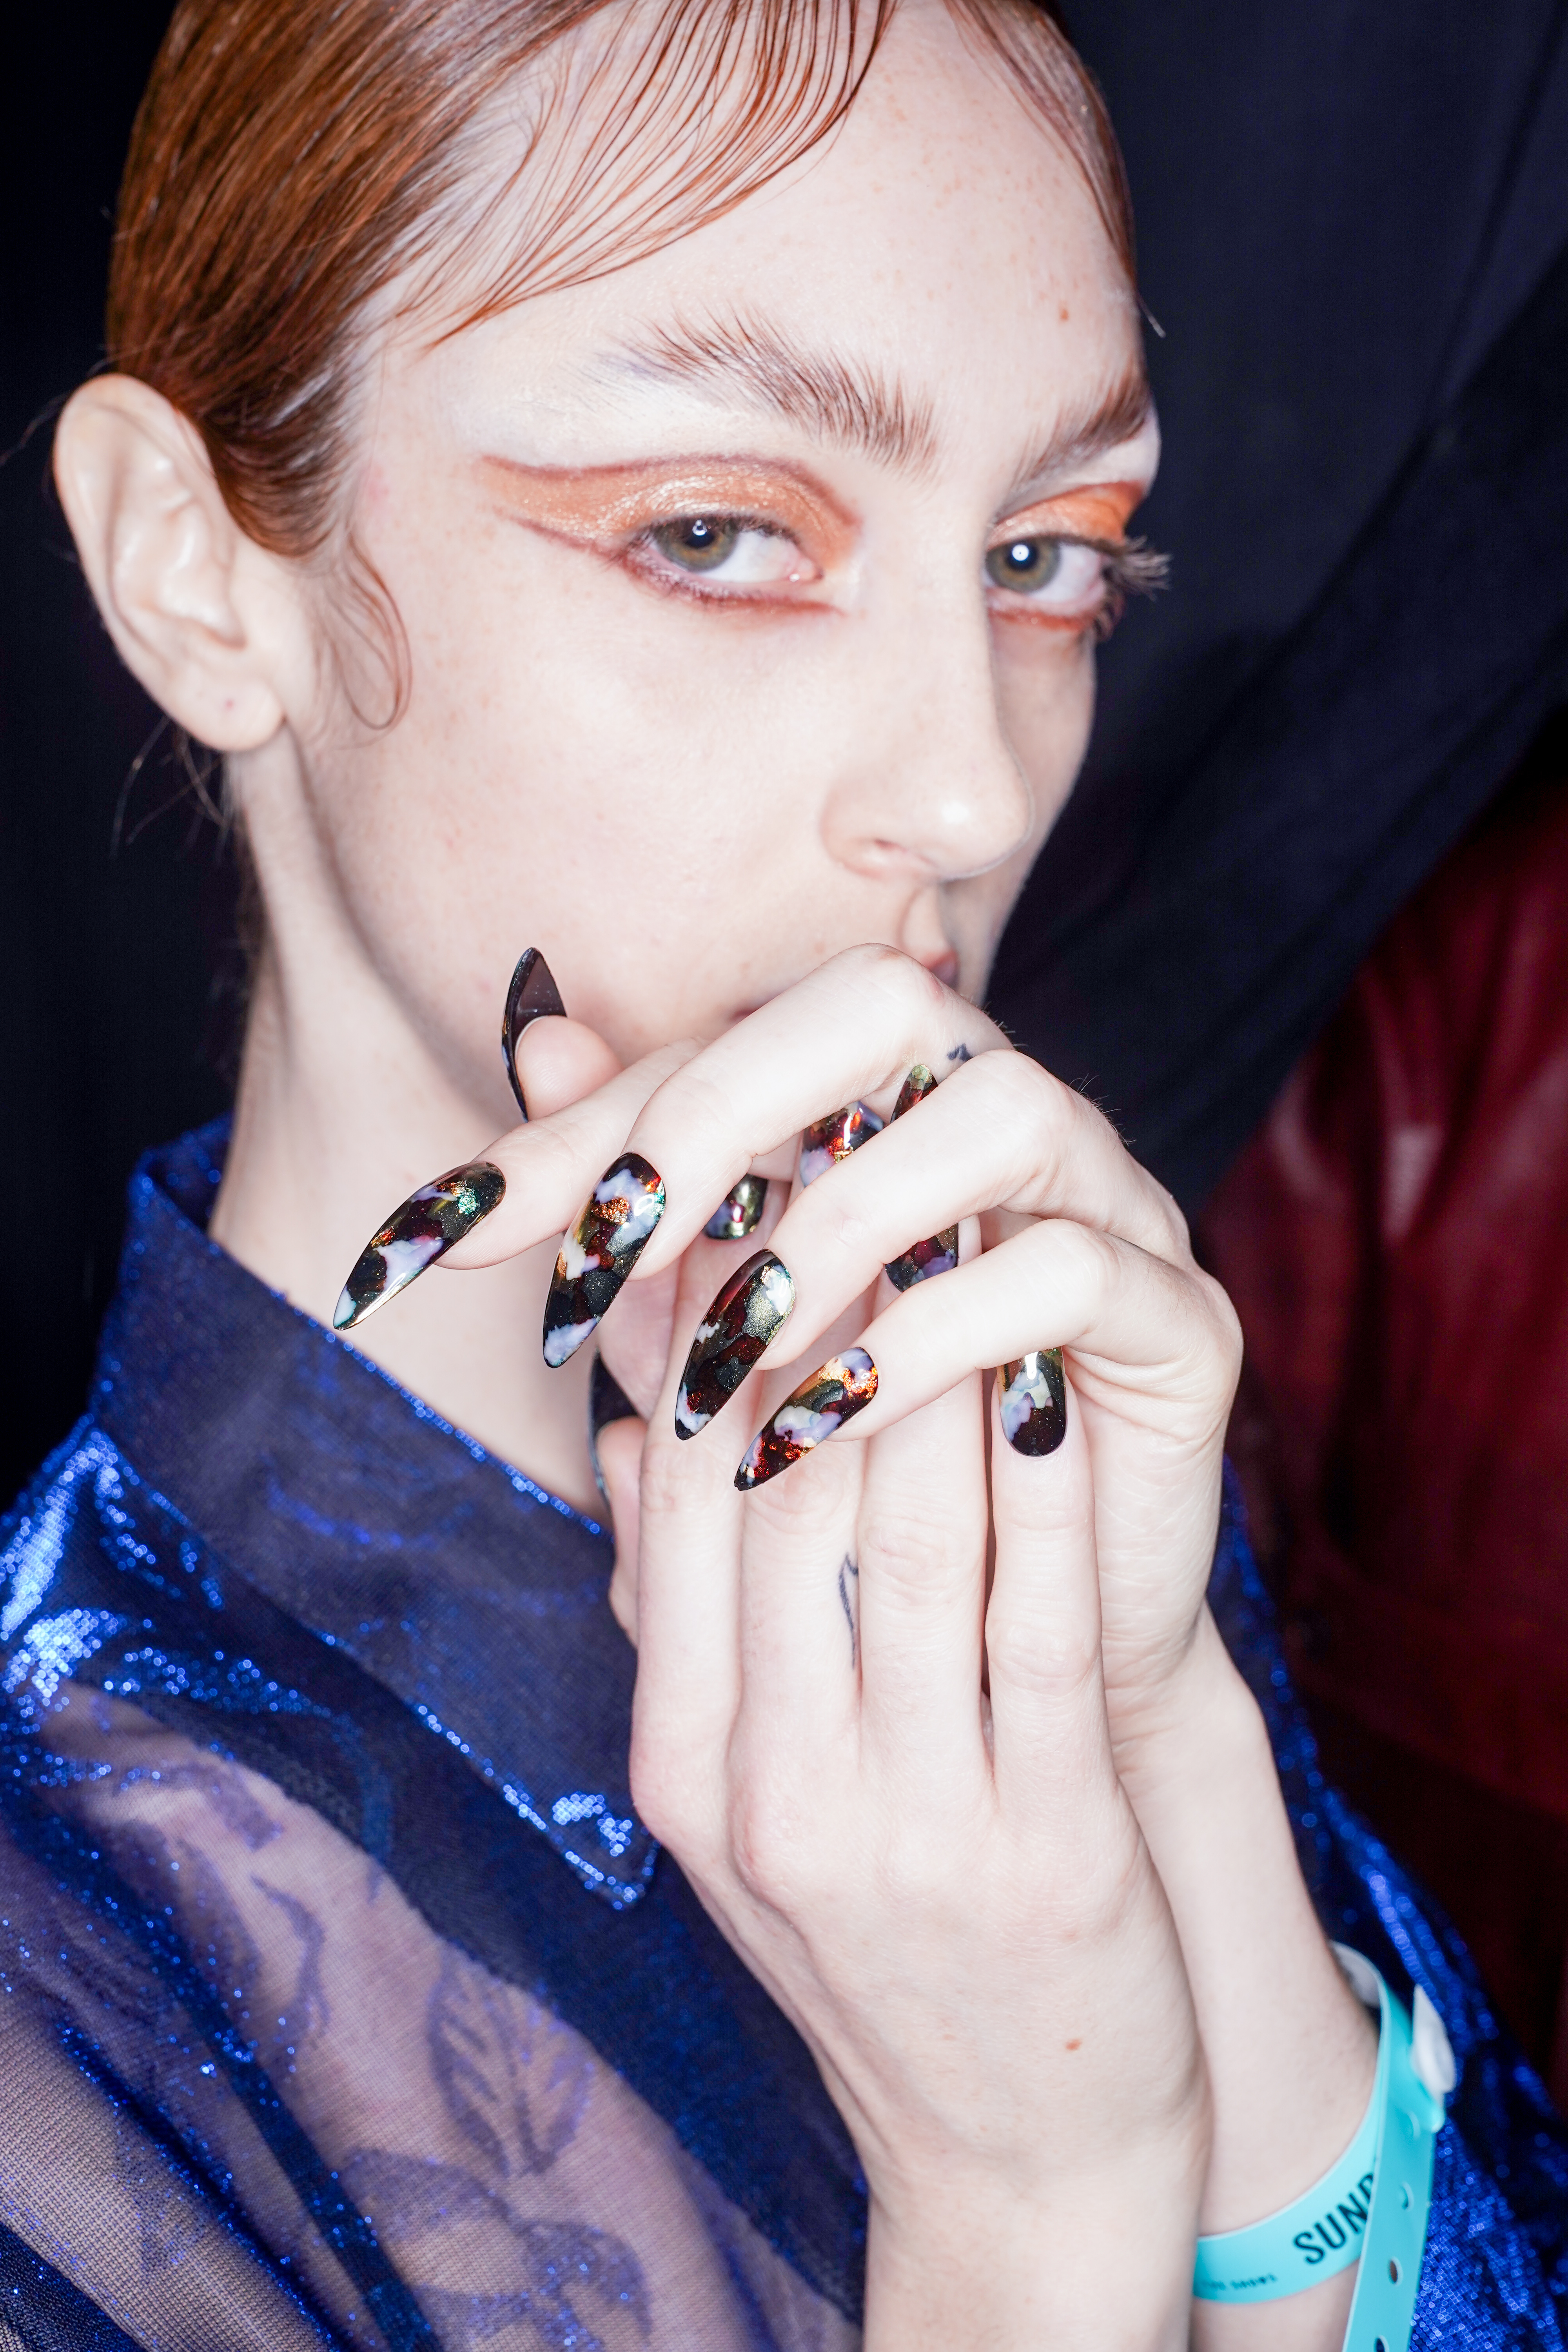 NYFW A/W 2020: CND for the Blonds